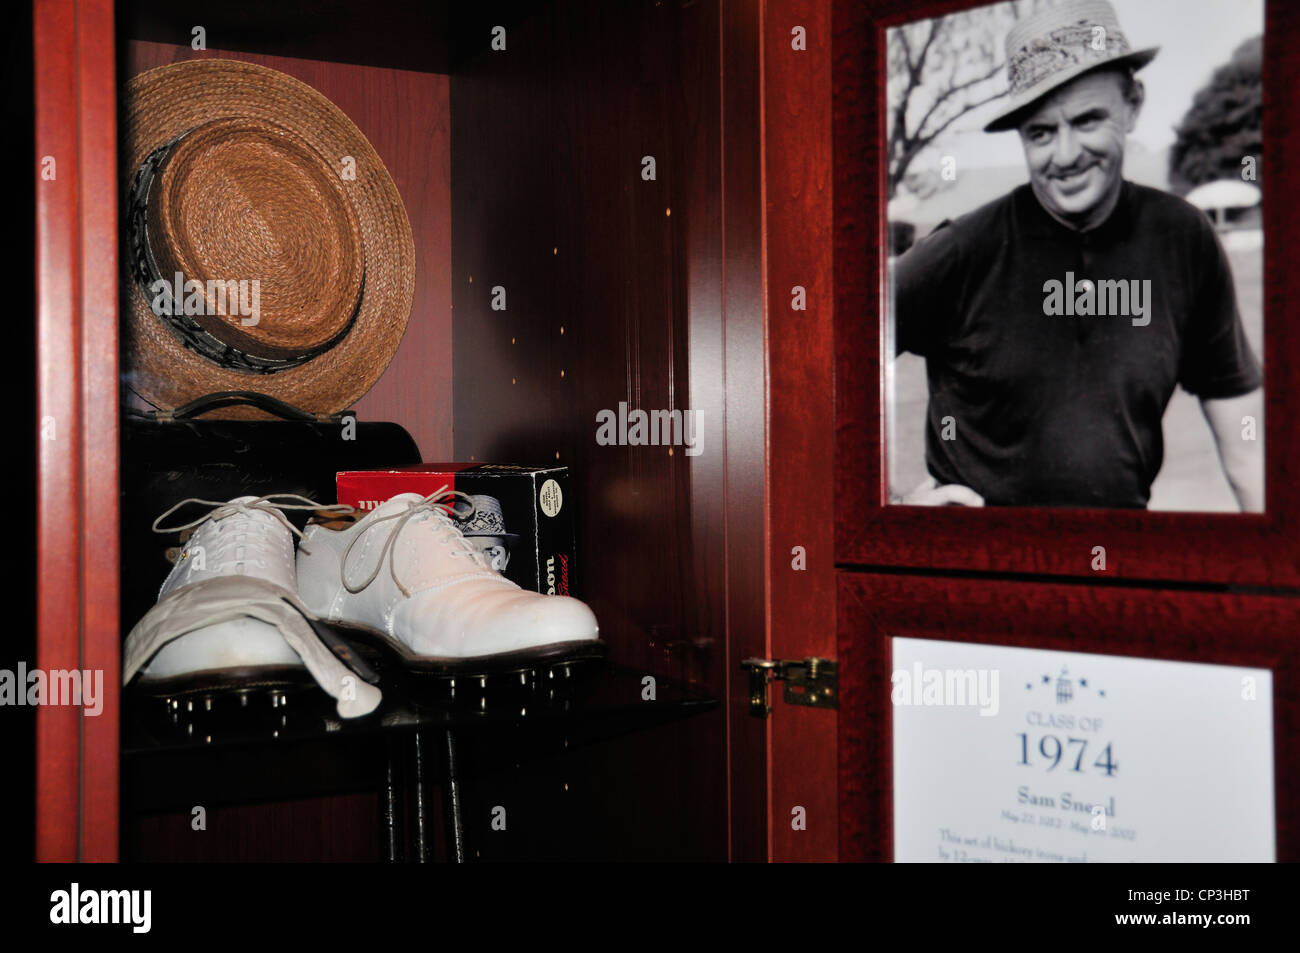 Locker in die World Golf Hall Of Fame mit Erinnerungen an Sam Sneads Karriere Stockbild